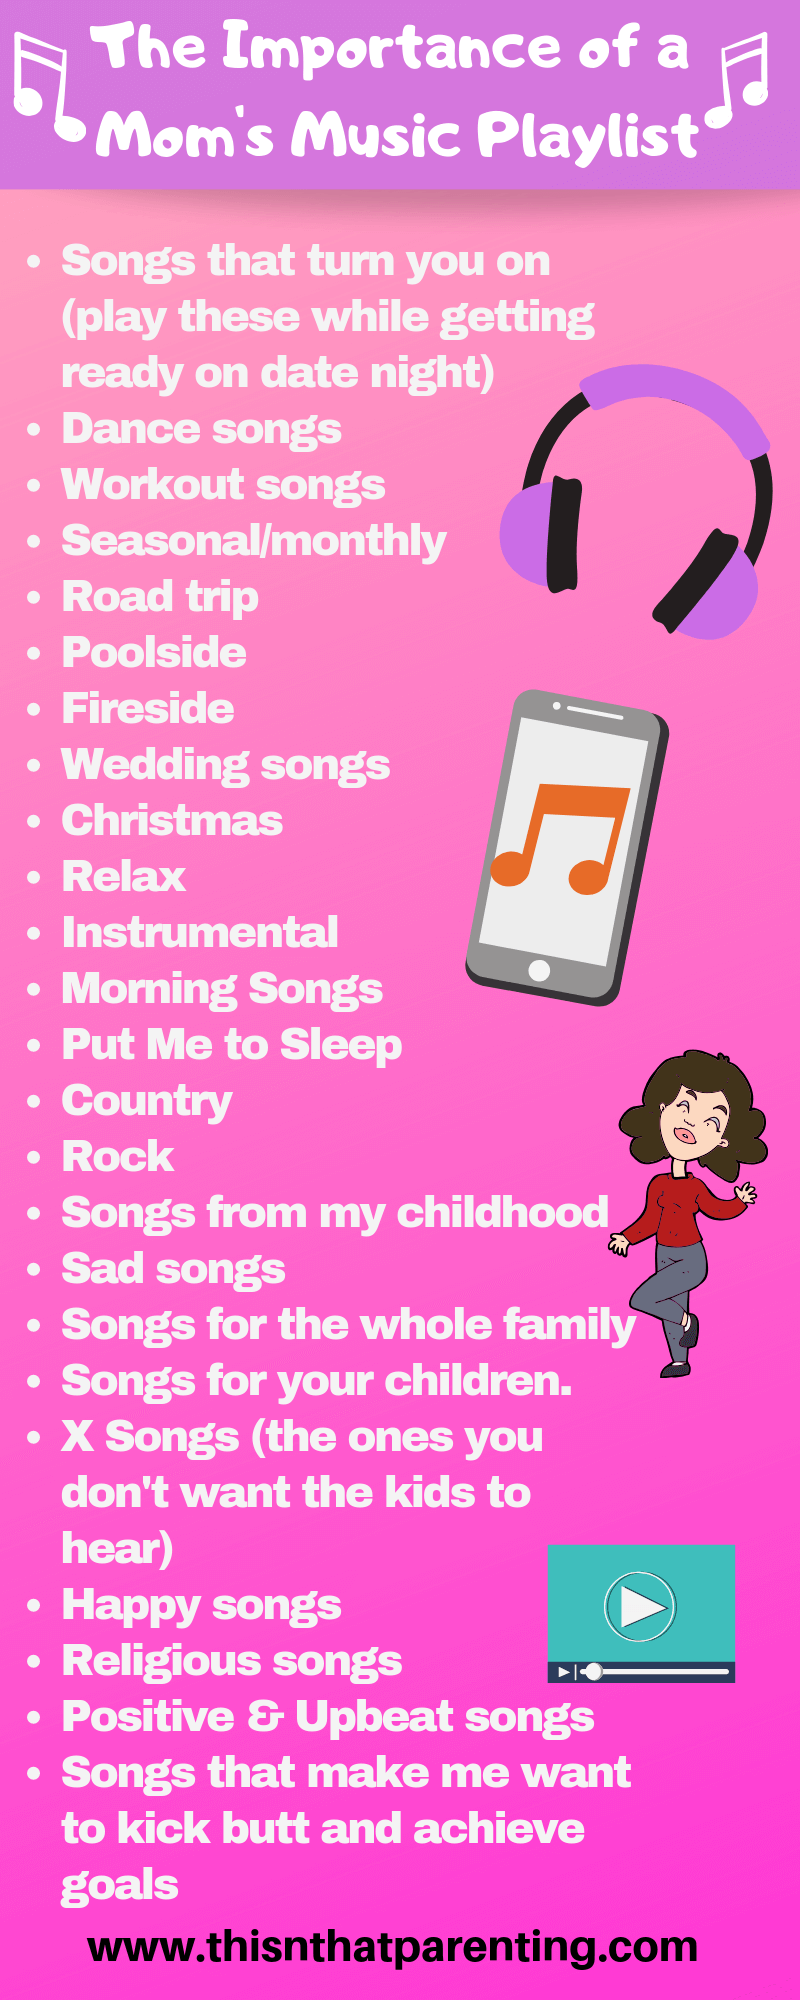 This post gives you the why, how to, what categories and how to use a playlist. I also share my personal playlist as a place to get started if you wish. #music #playlist #playlistsformoods #playlistideas